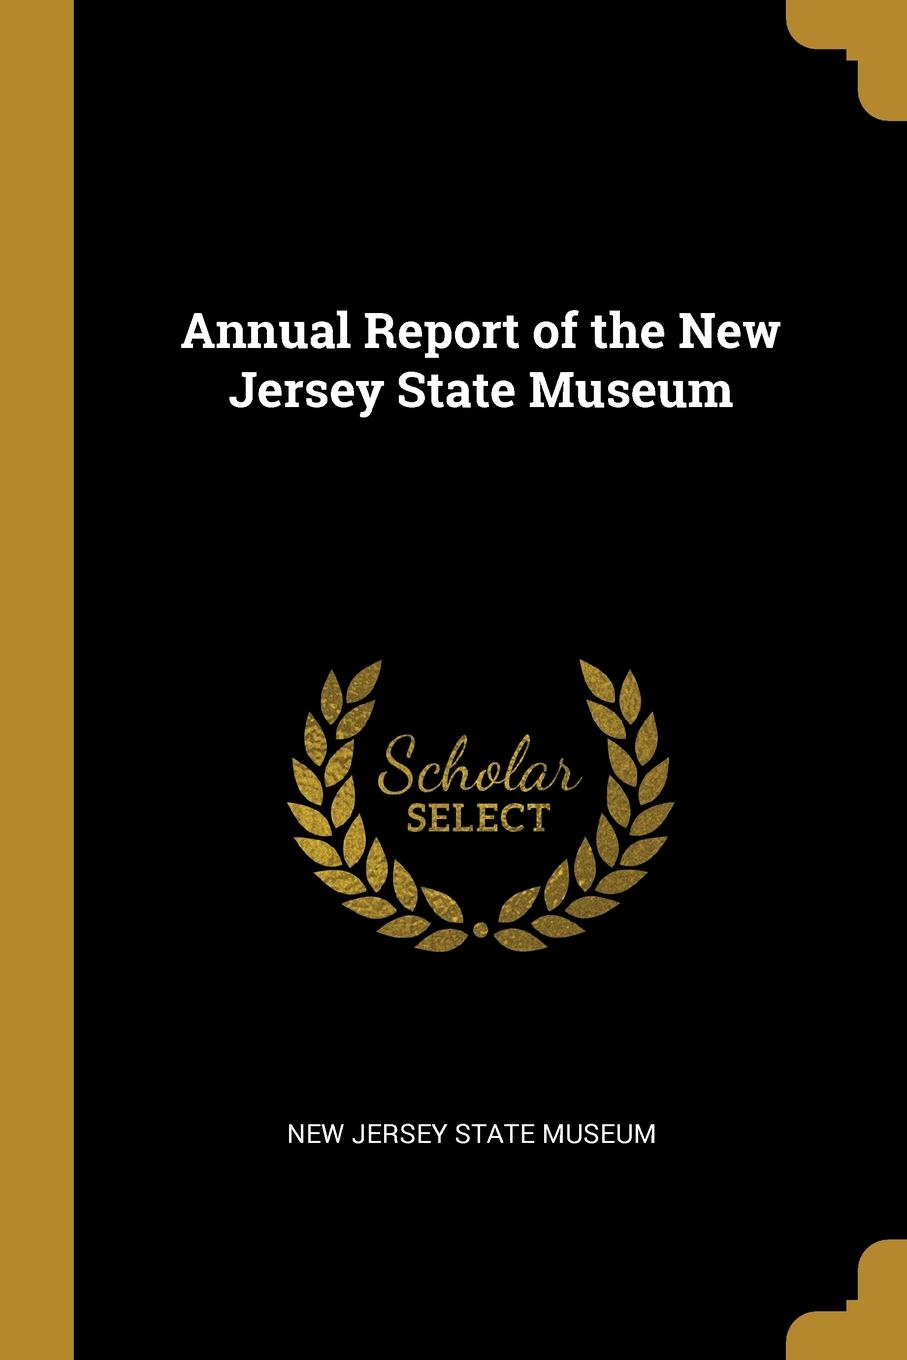 New Jersey State Museum Annual Report of the New Jersey State Museum